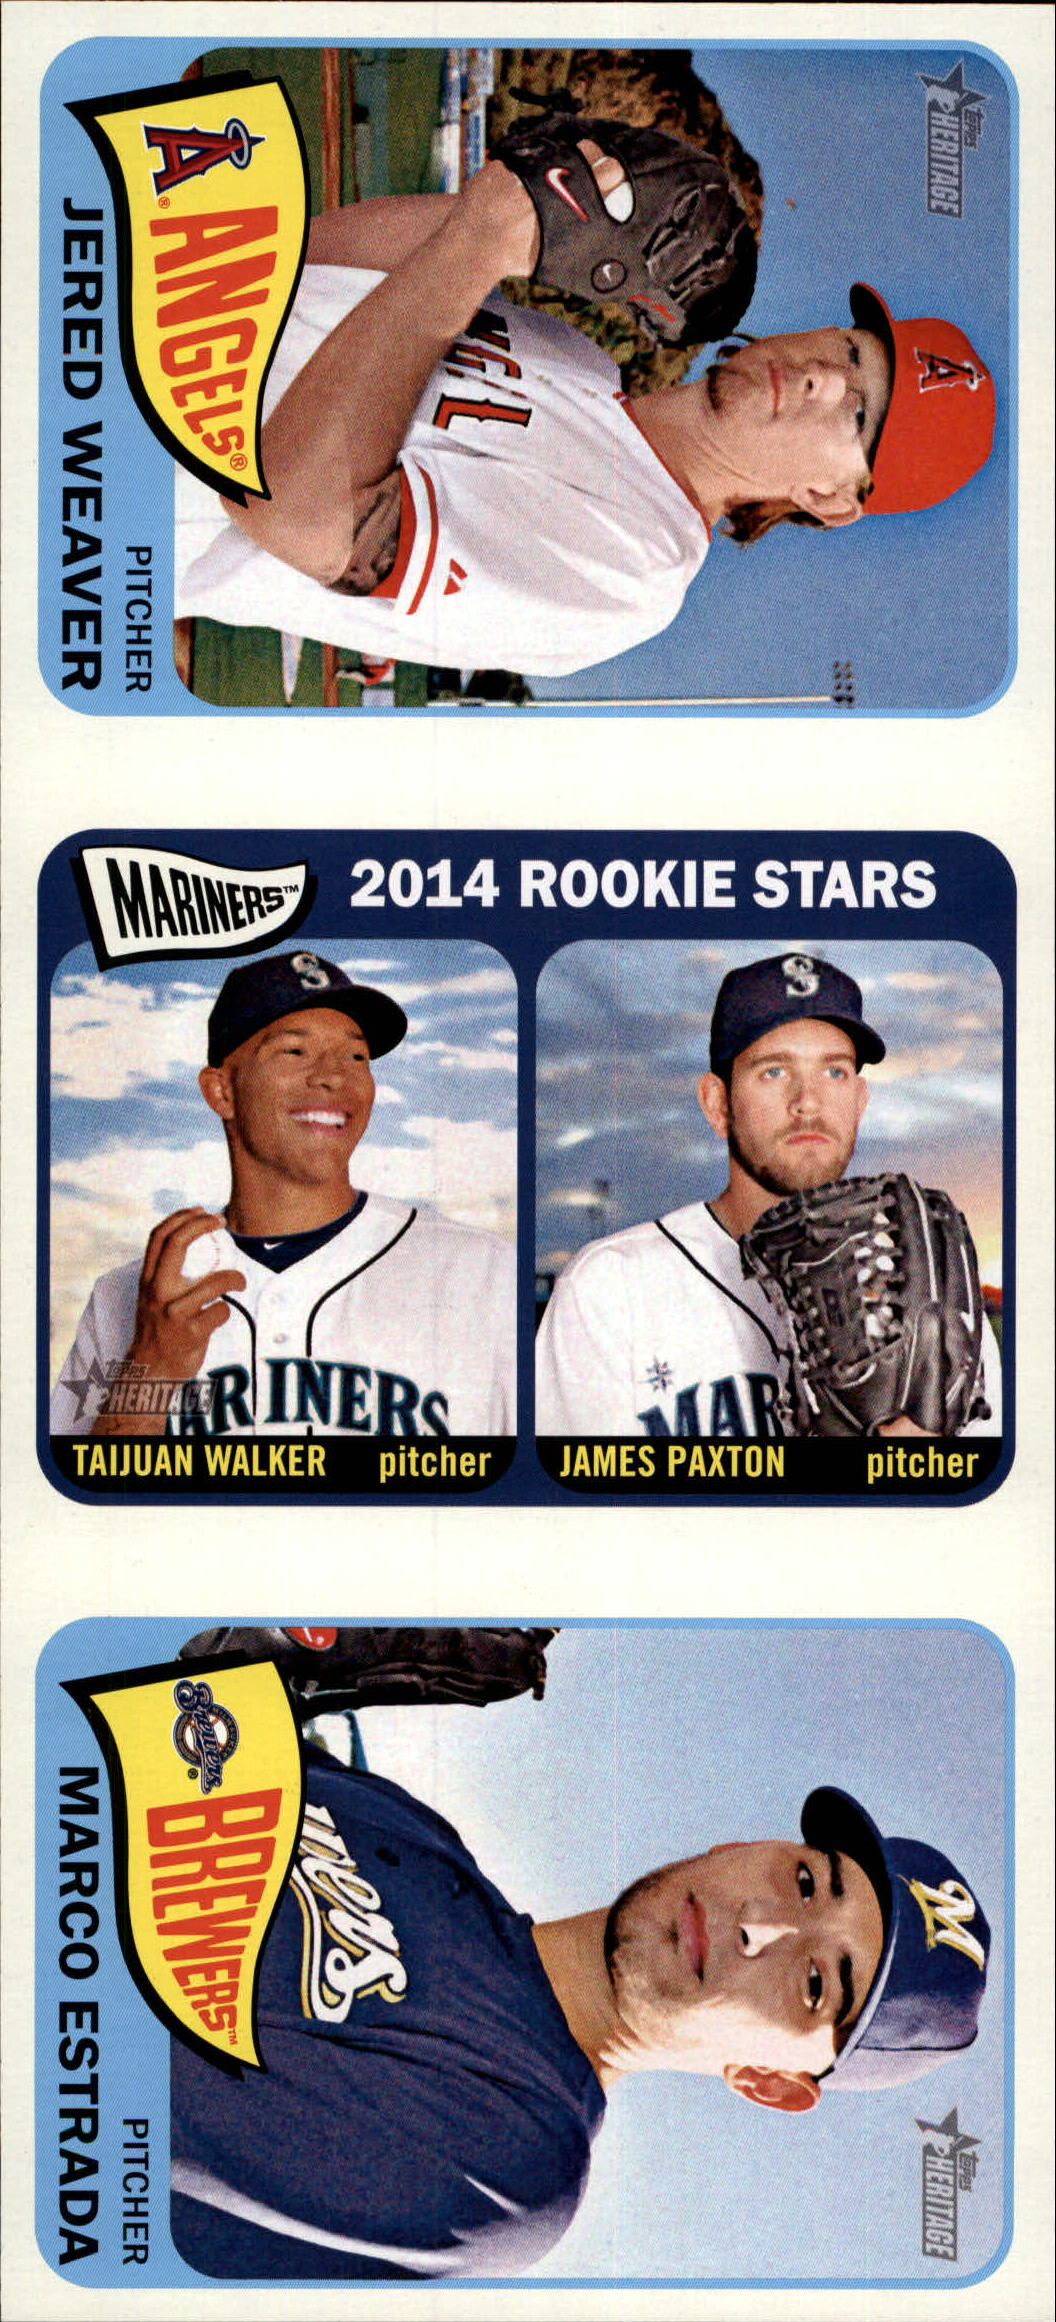 2014 Topps Heritage Advertising Panels #29 Jered Weaver/Taijuan Walker/James Paxton/Marco Estrada